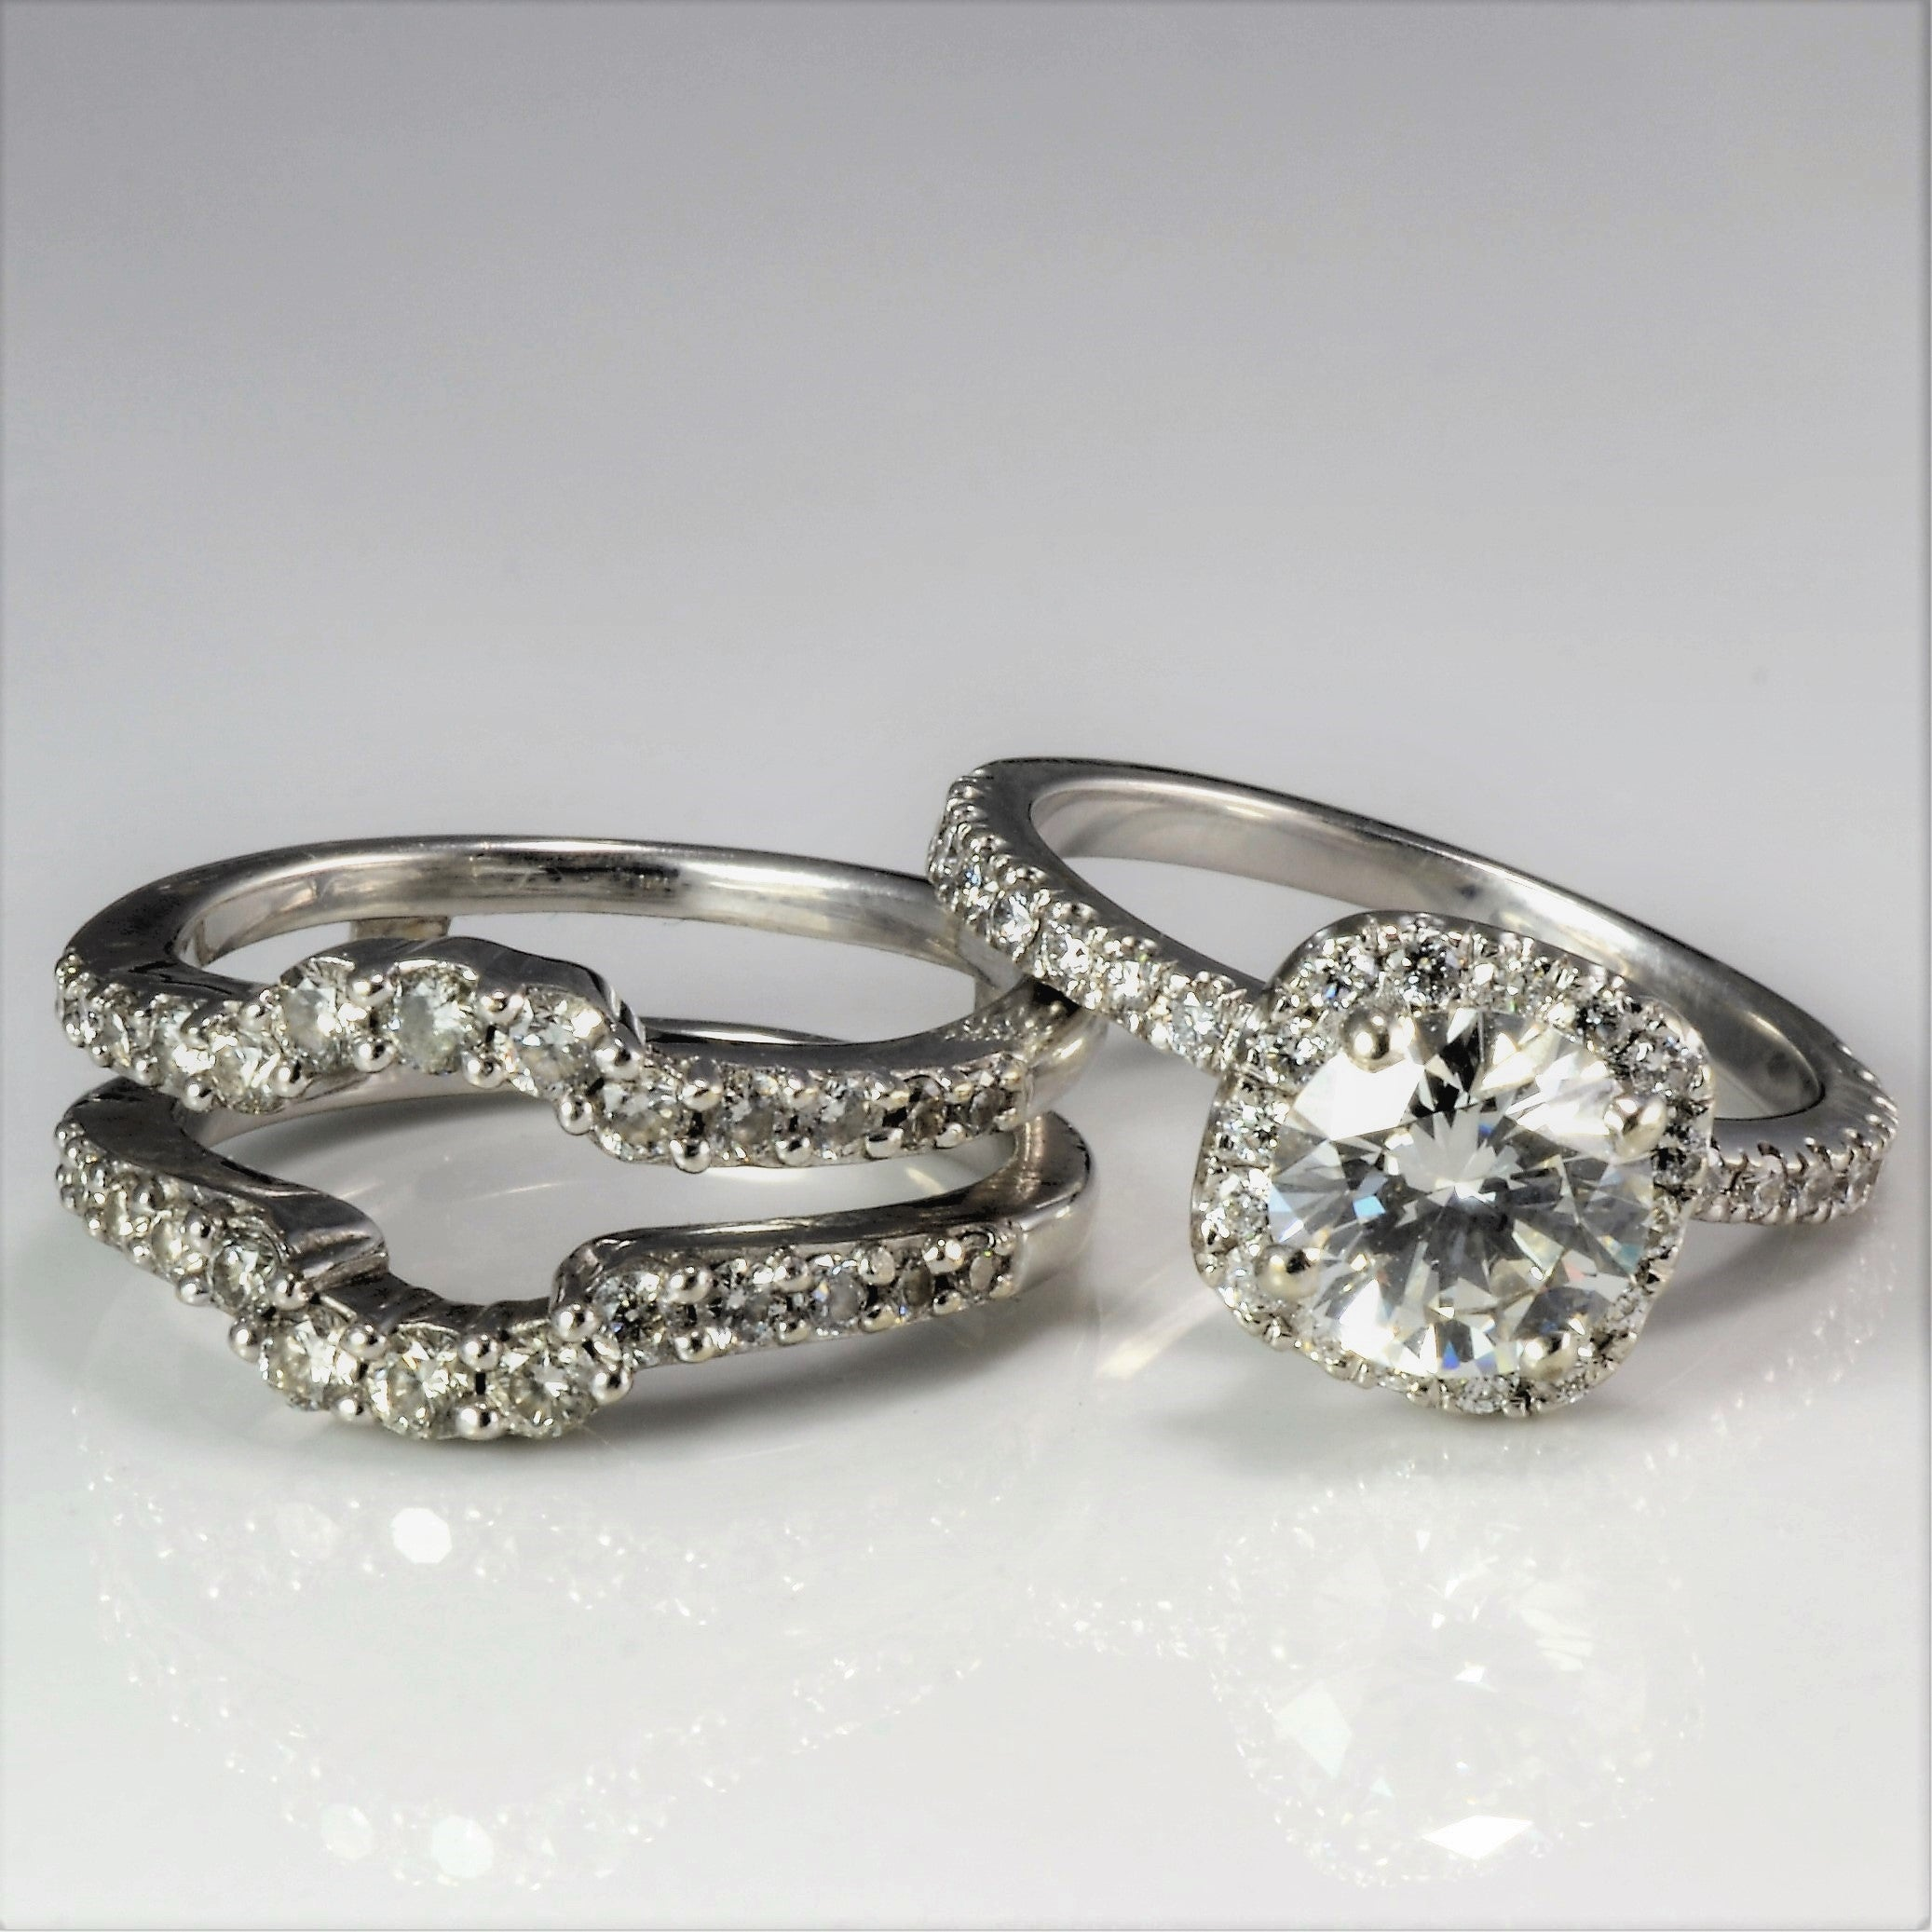 Elegant Halo Diamond Wedding Set | 1.85 ctw, SZ 4.5 |